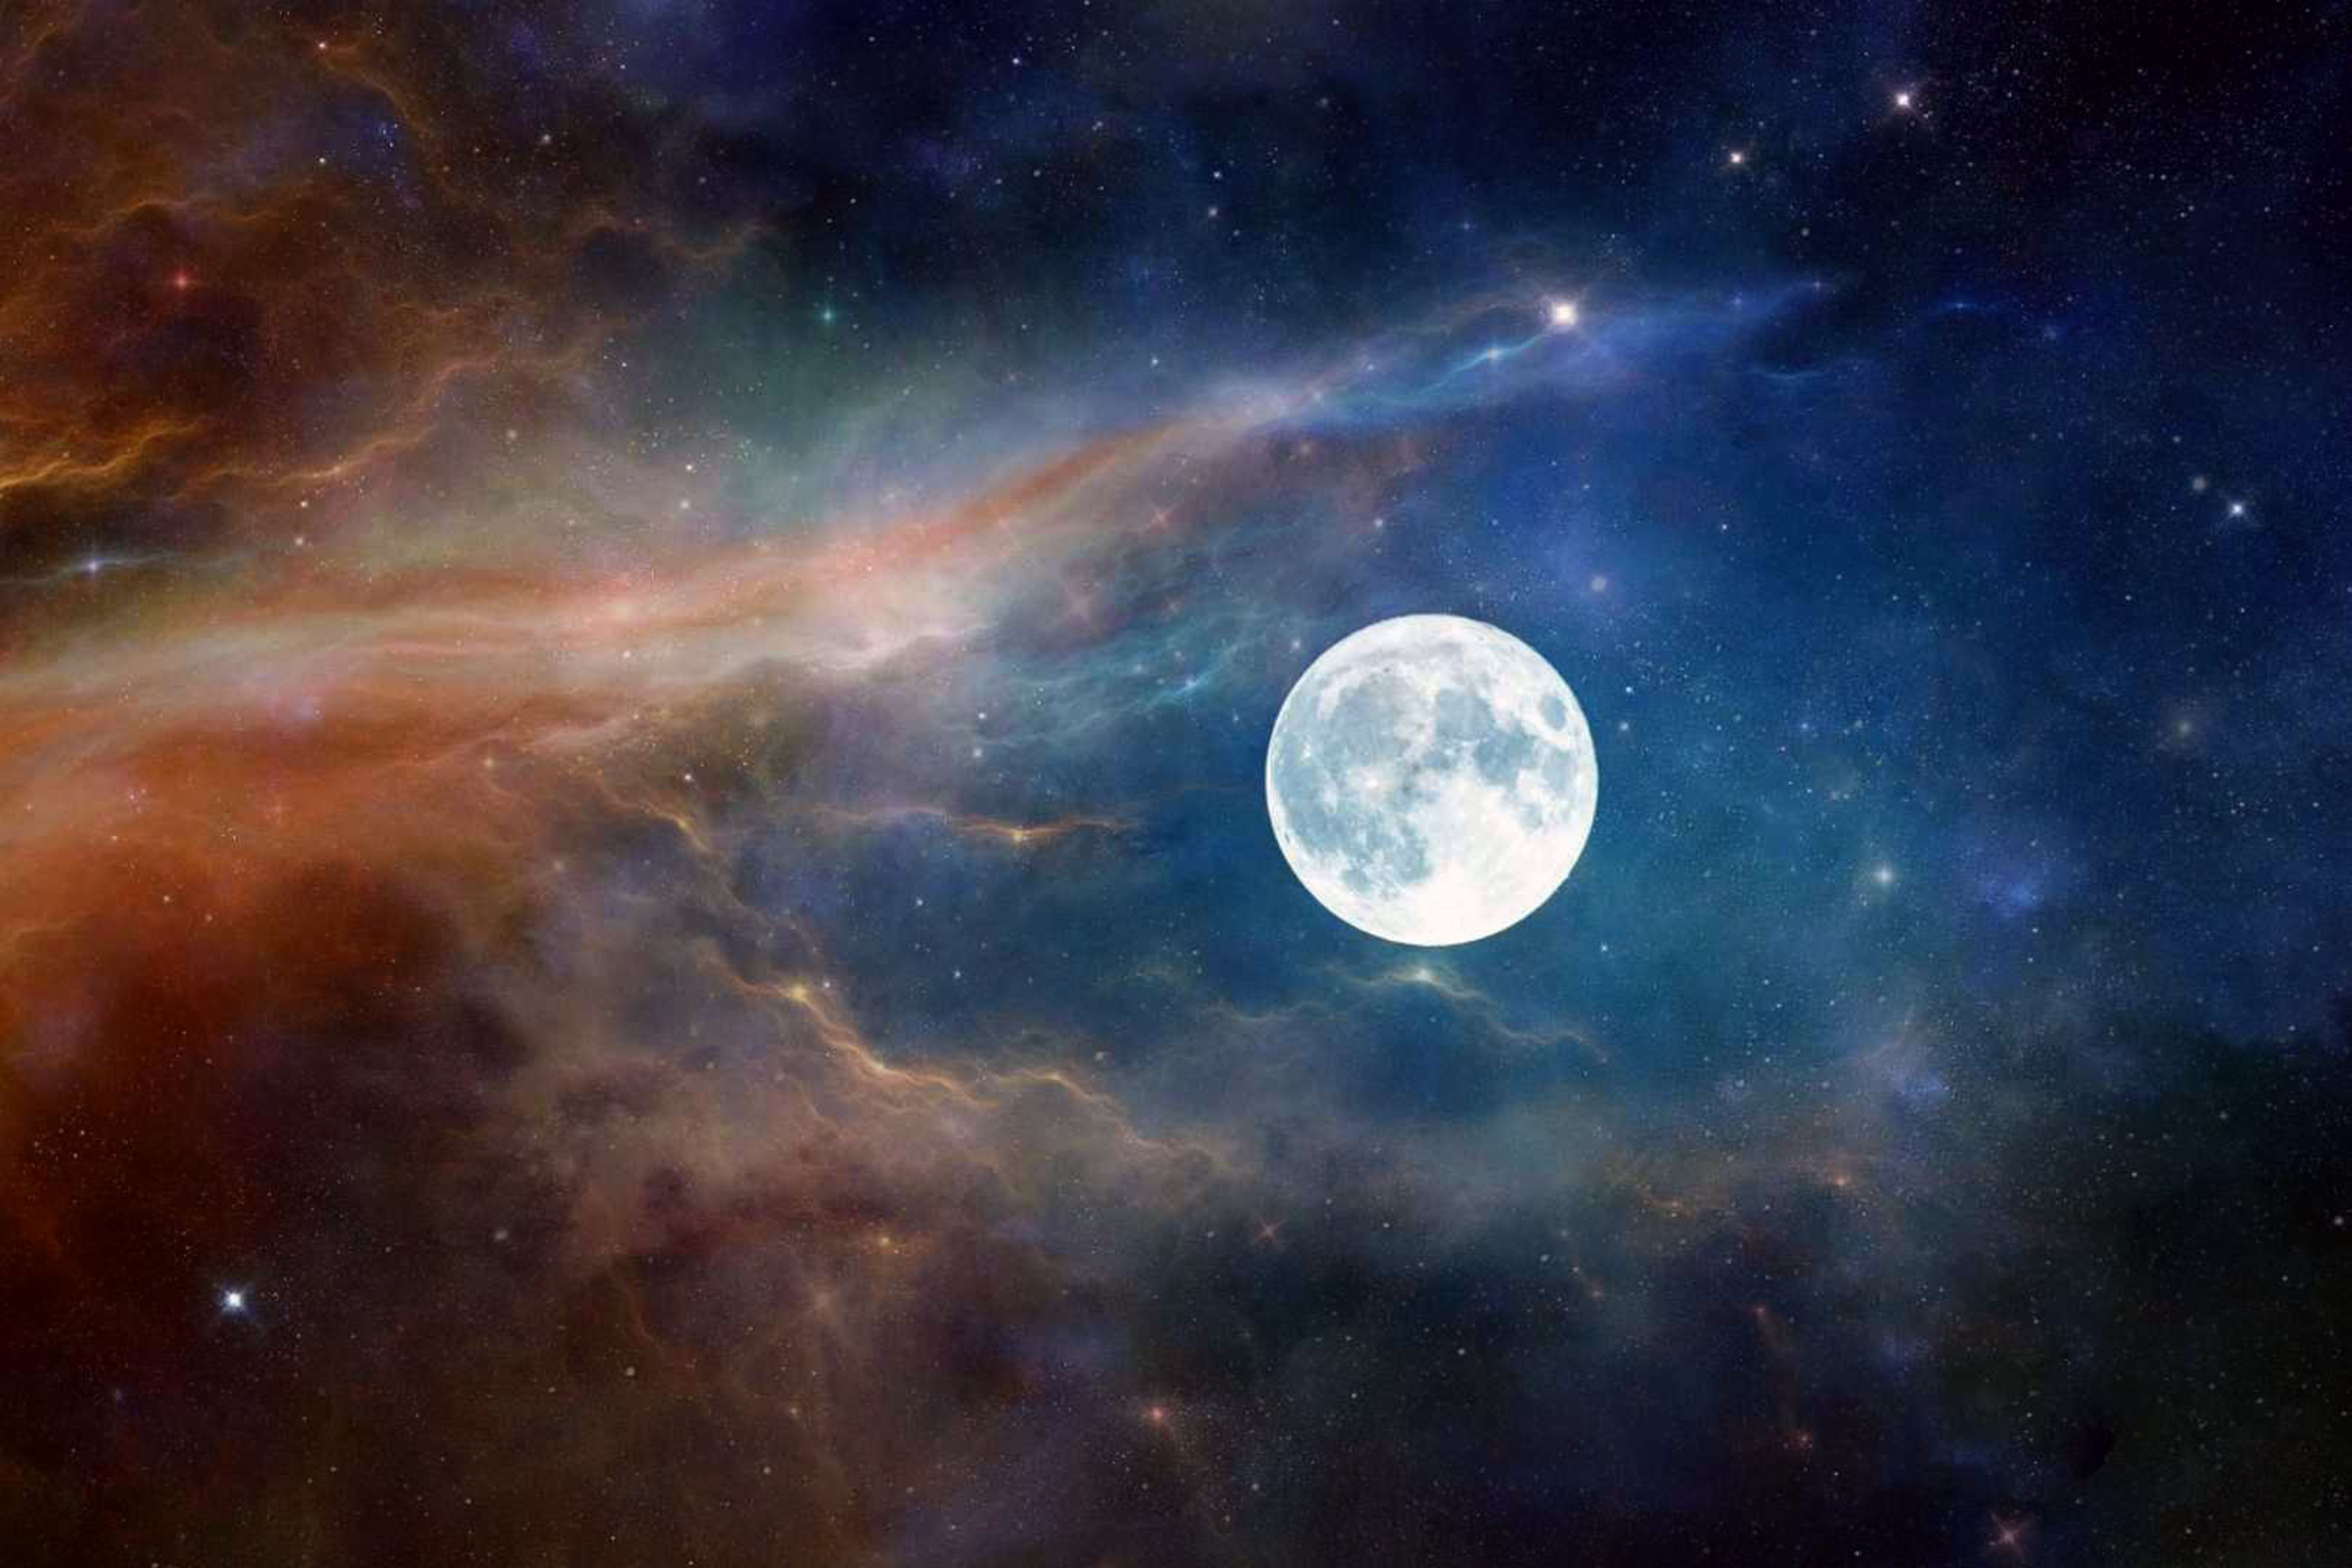 1366x768 moon astronaut nature clouds space 1366x768 - Space moon wallpaper ...